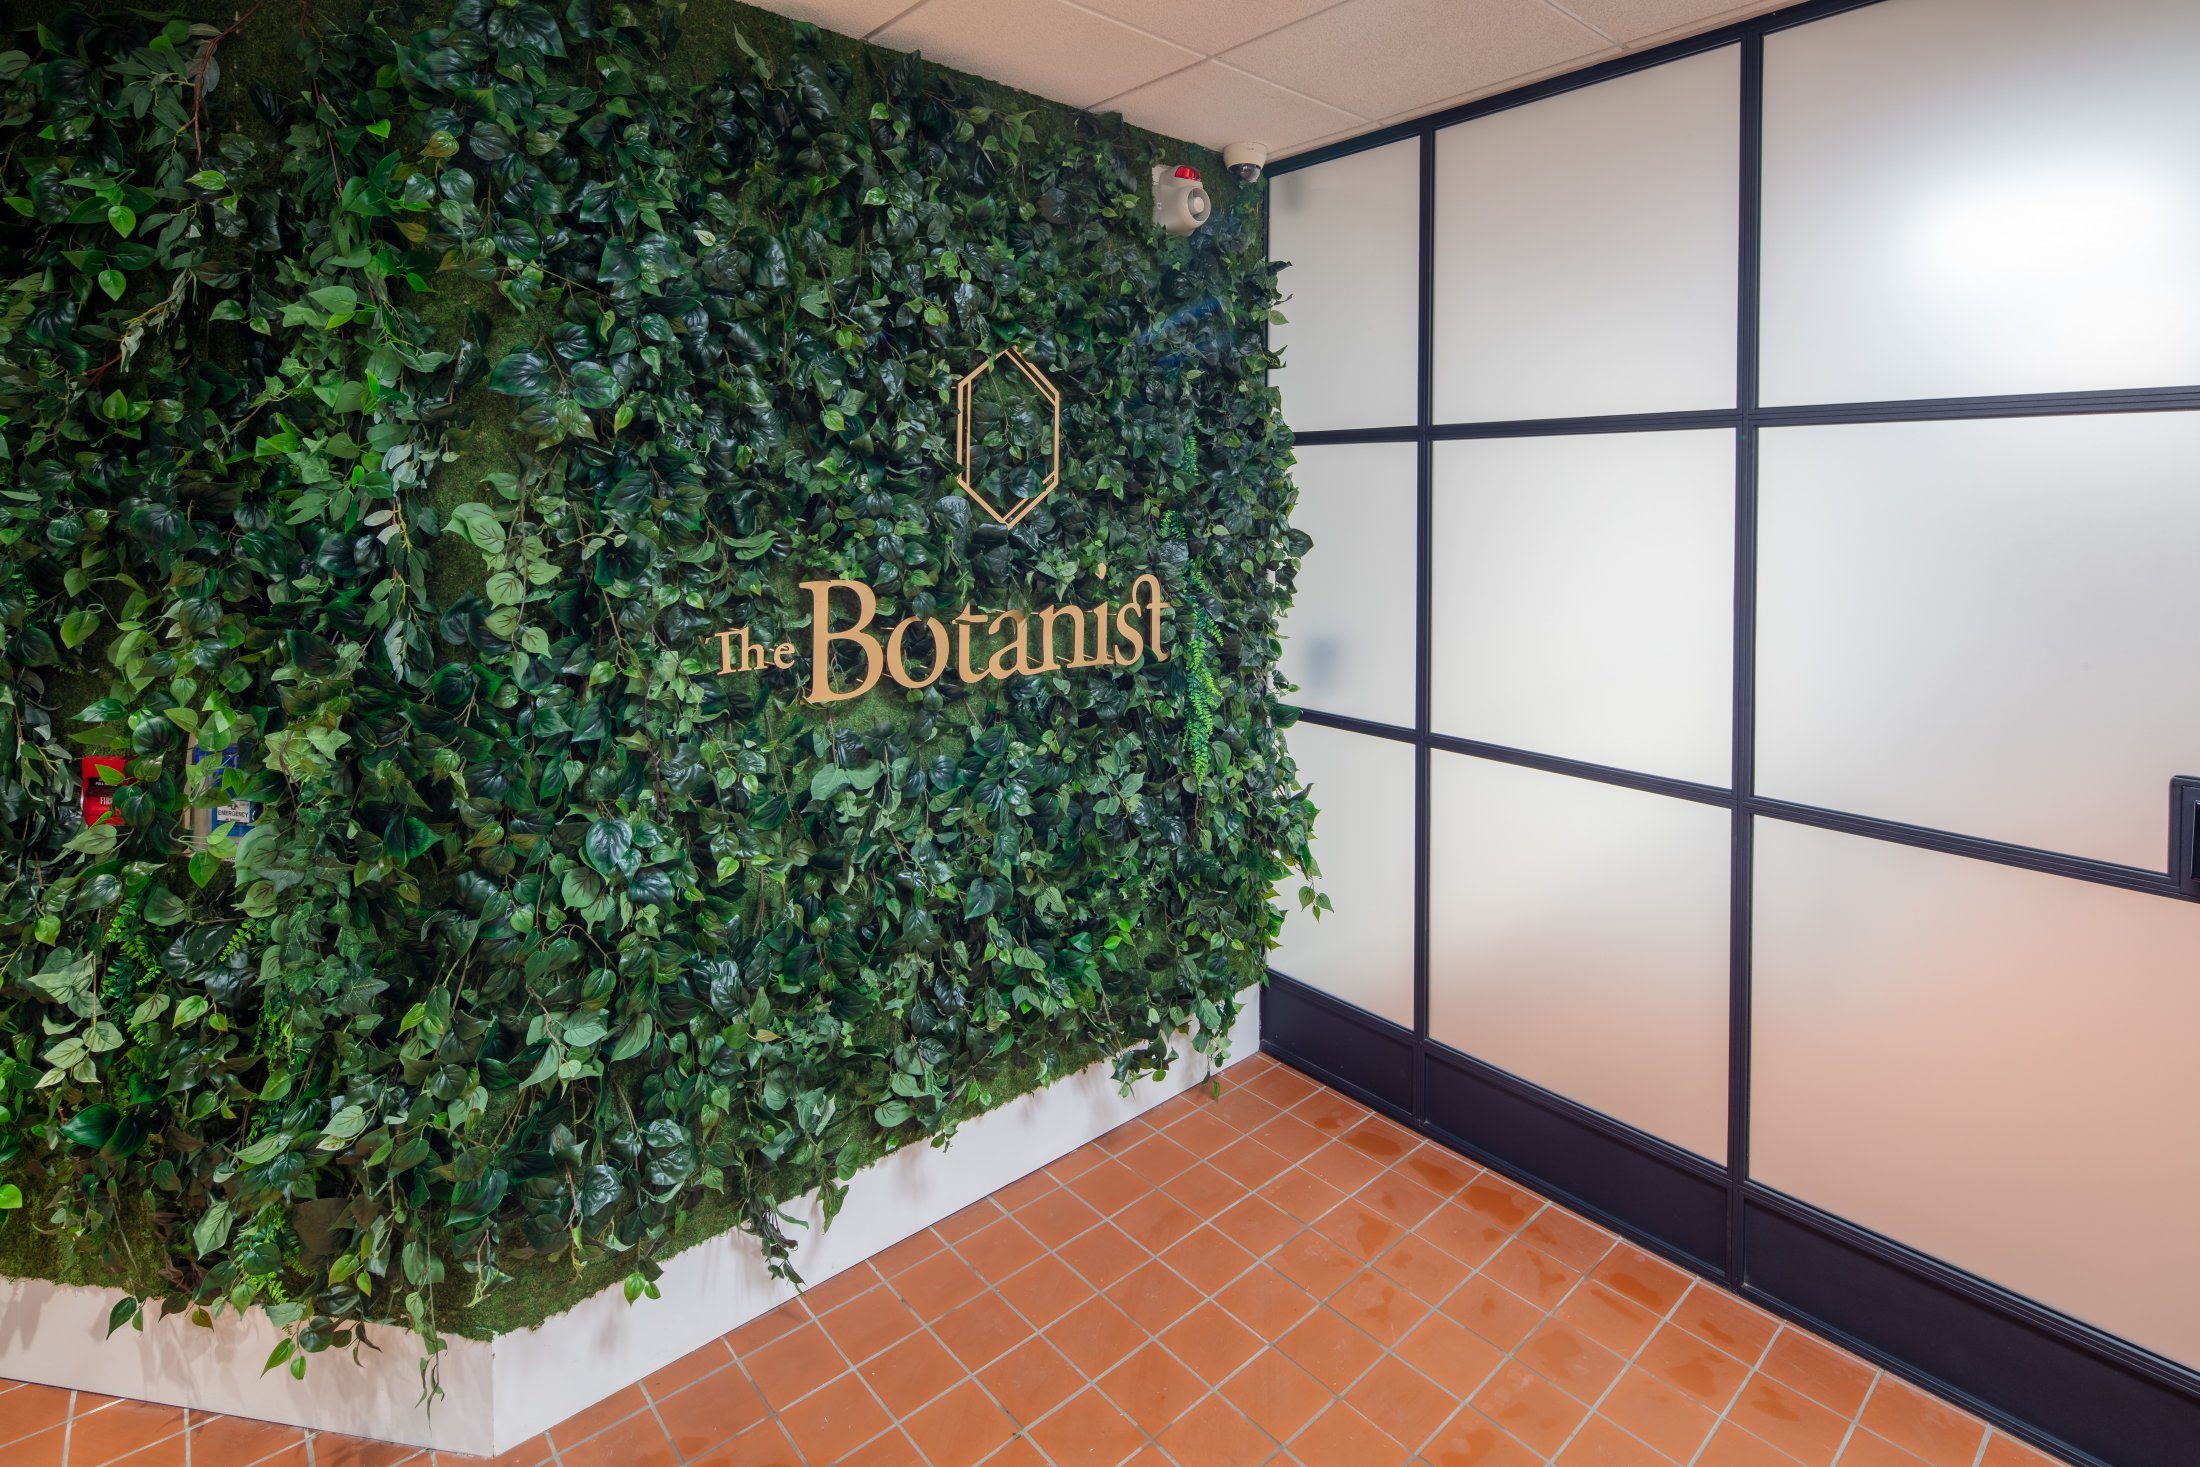 The Botanist : Welcome To the Intersection of Science and Nature